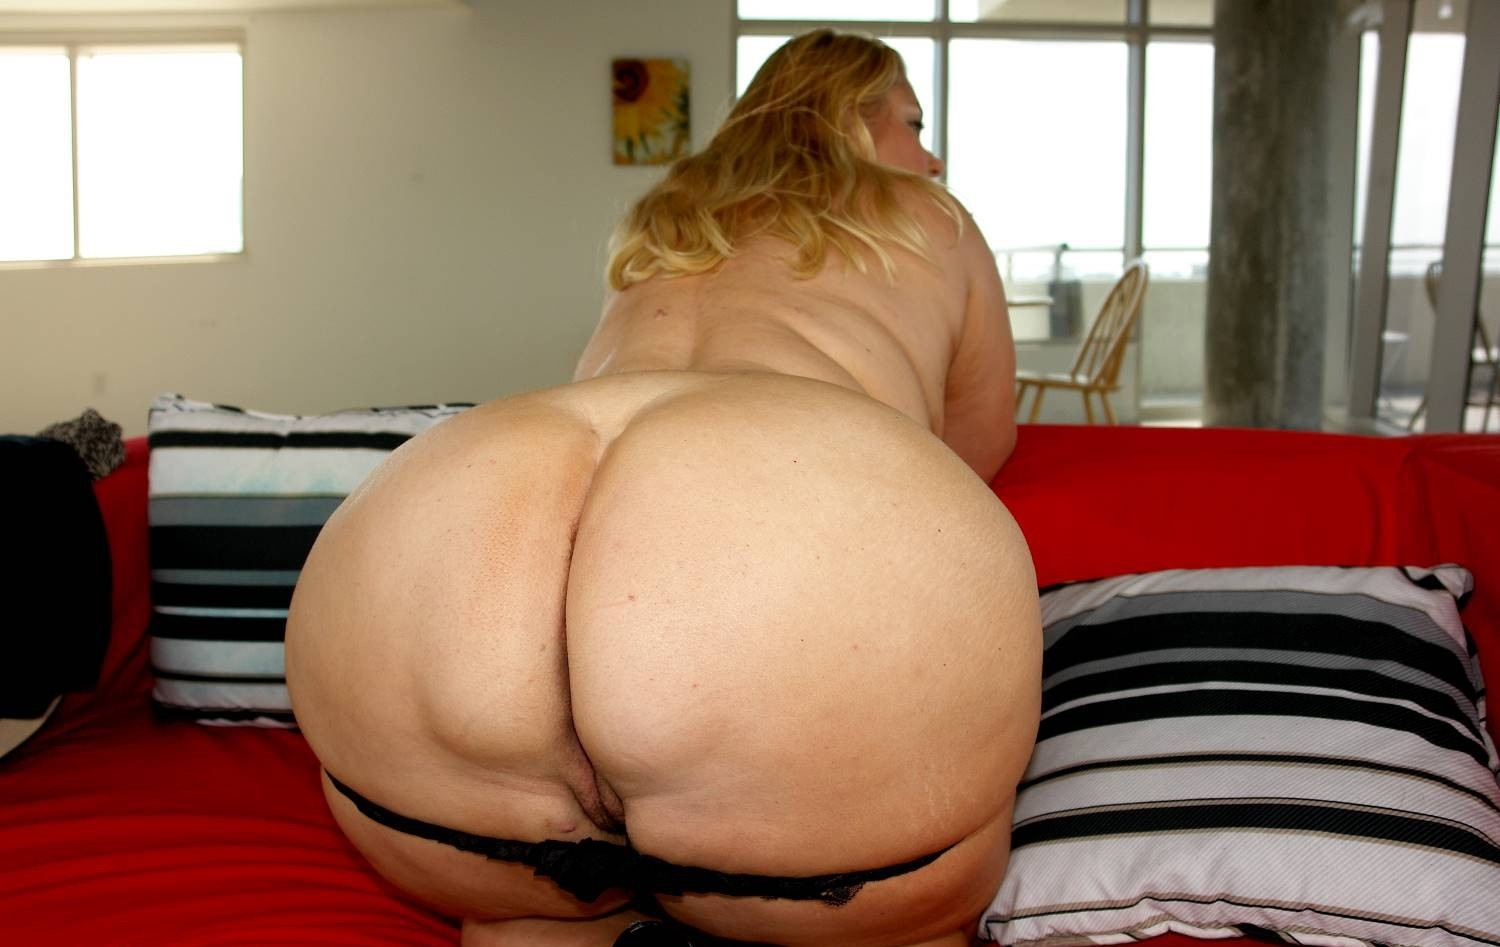 bbw-butt-video-gallery-amatuer-girl-pooping